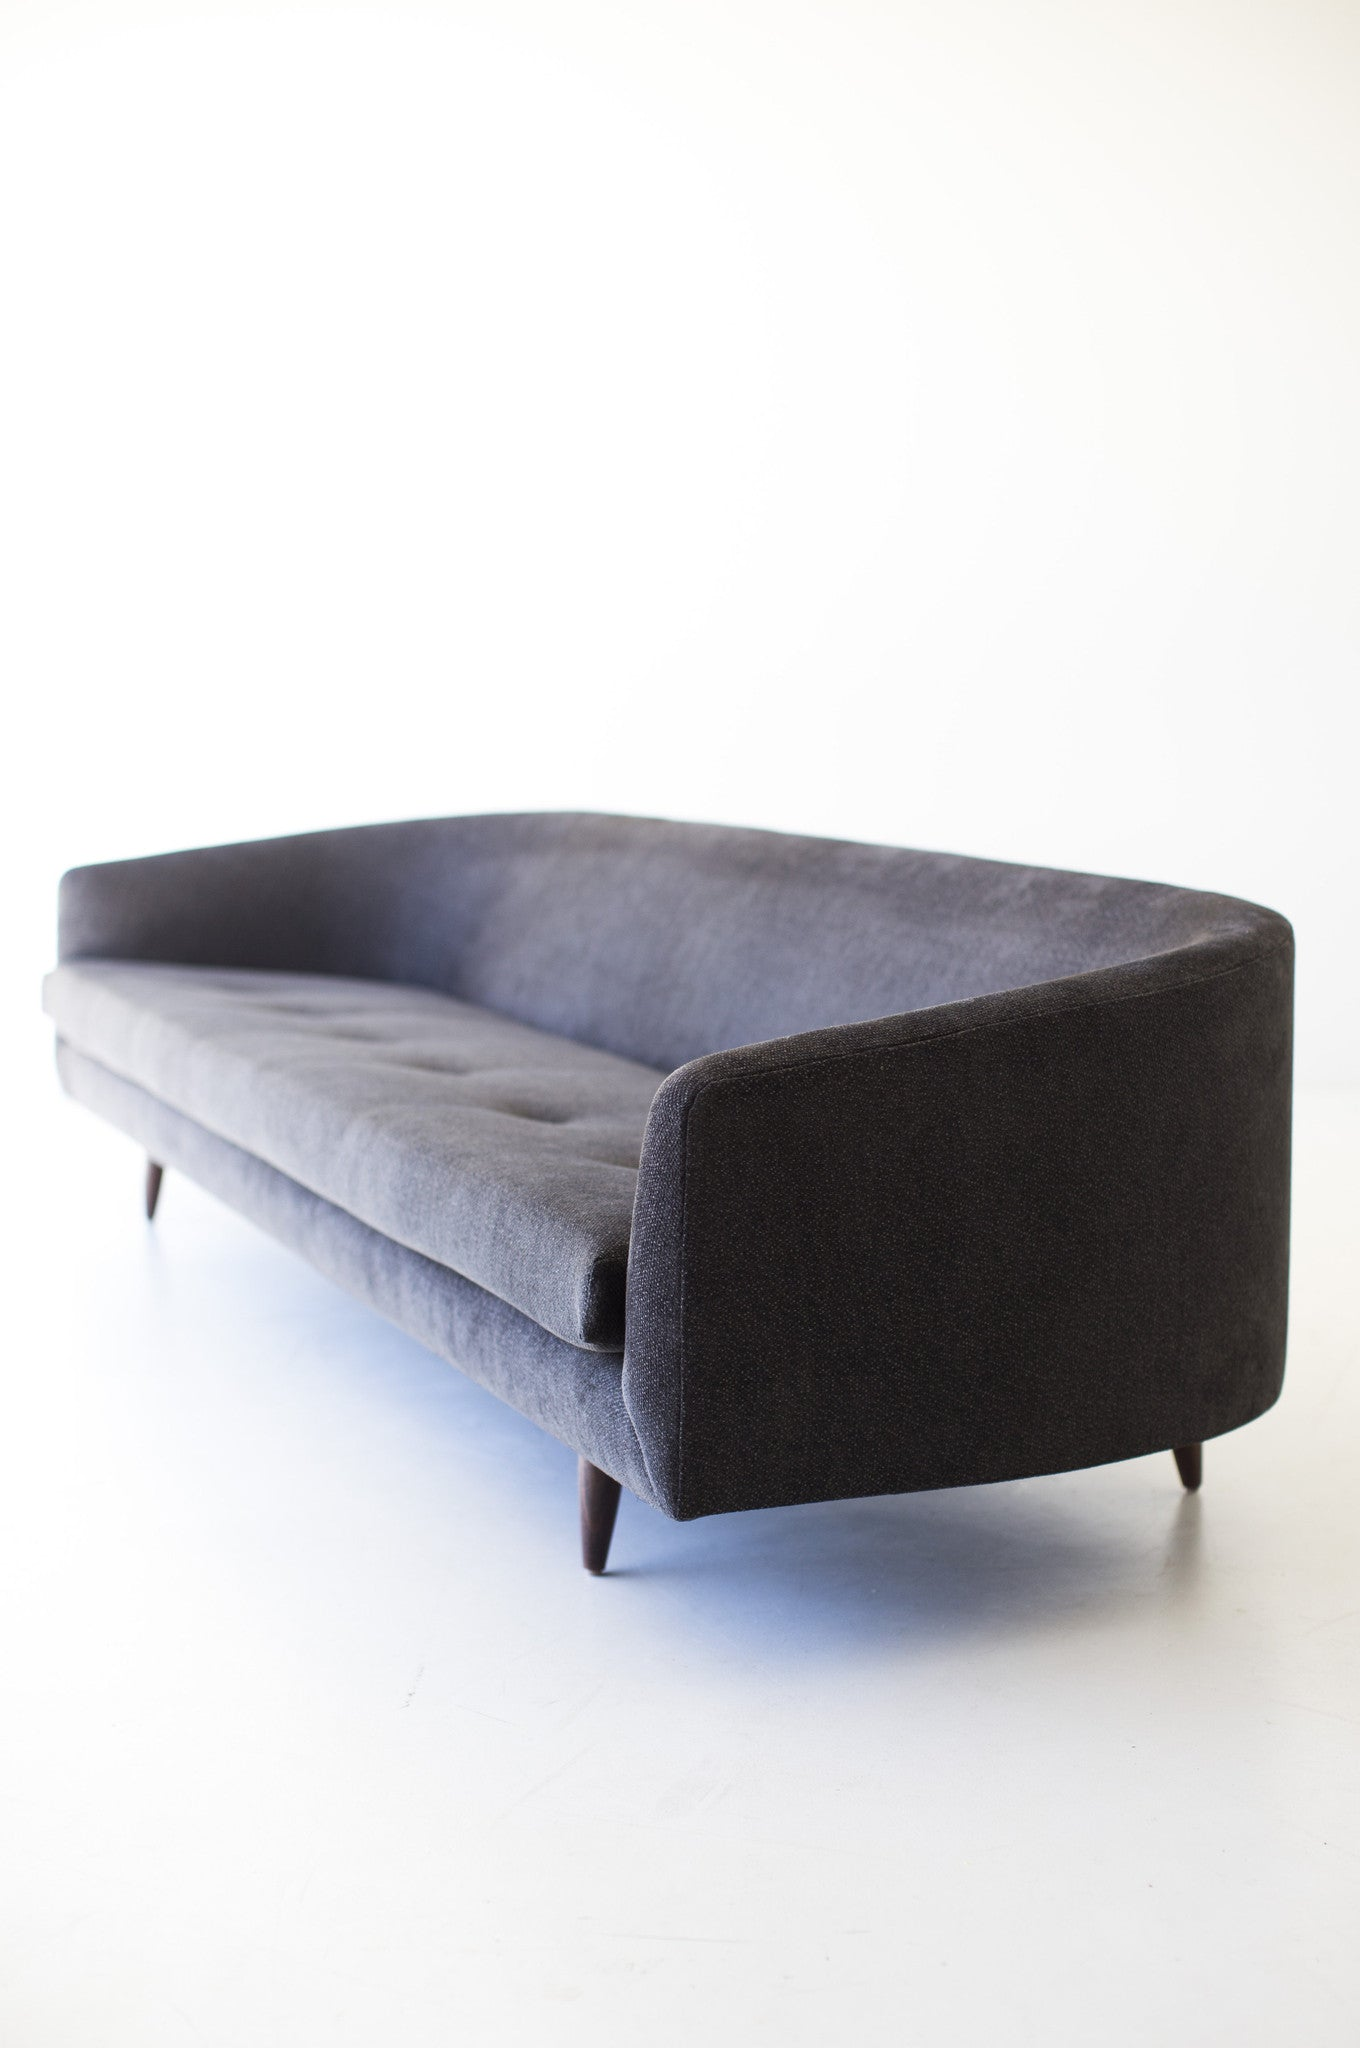 1408-modern-sofa-cloud-01